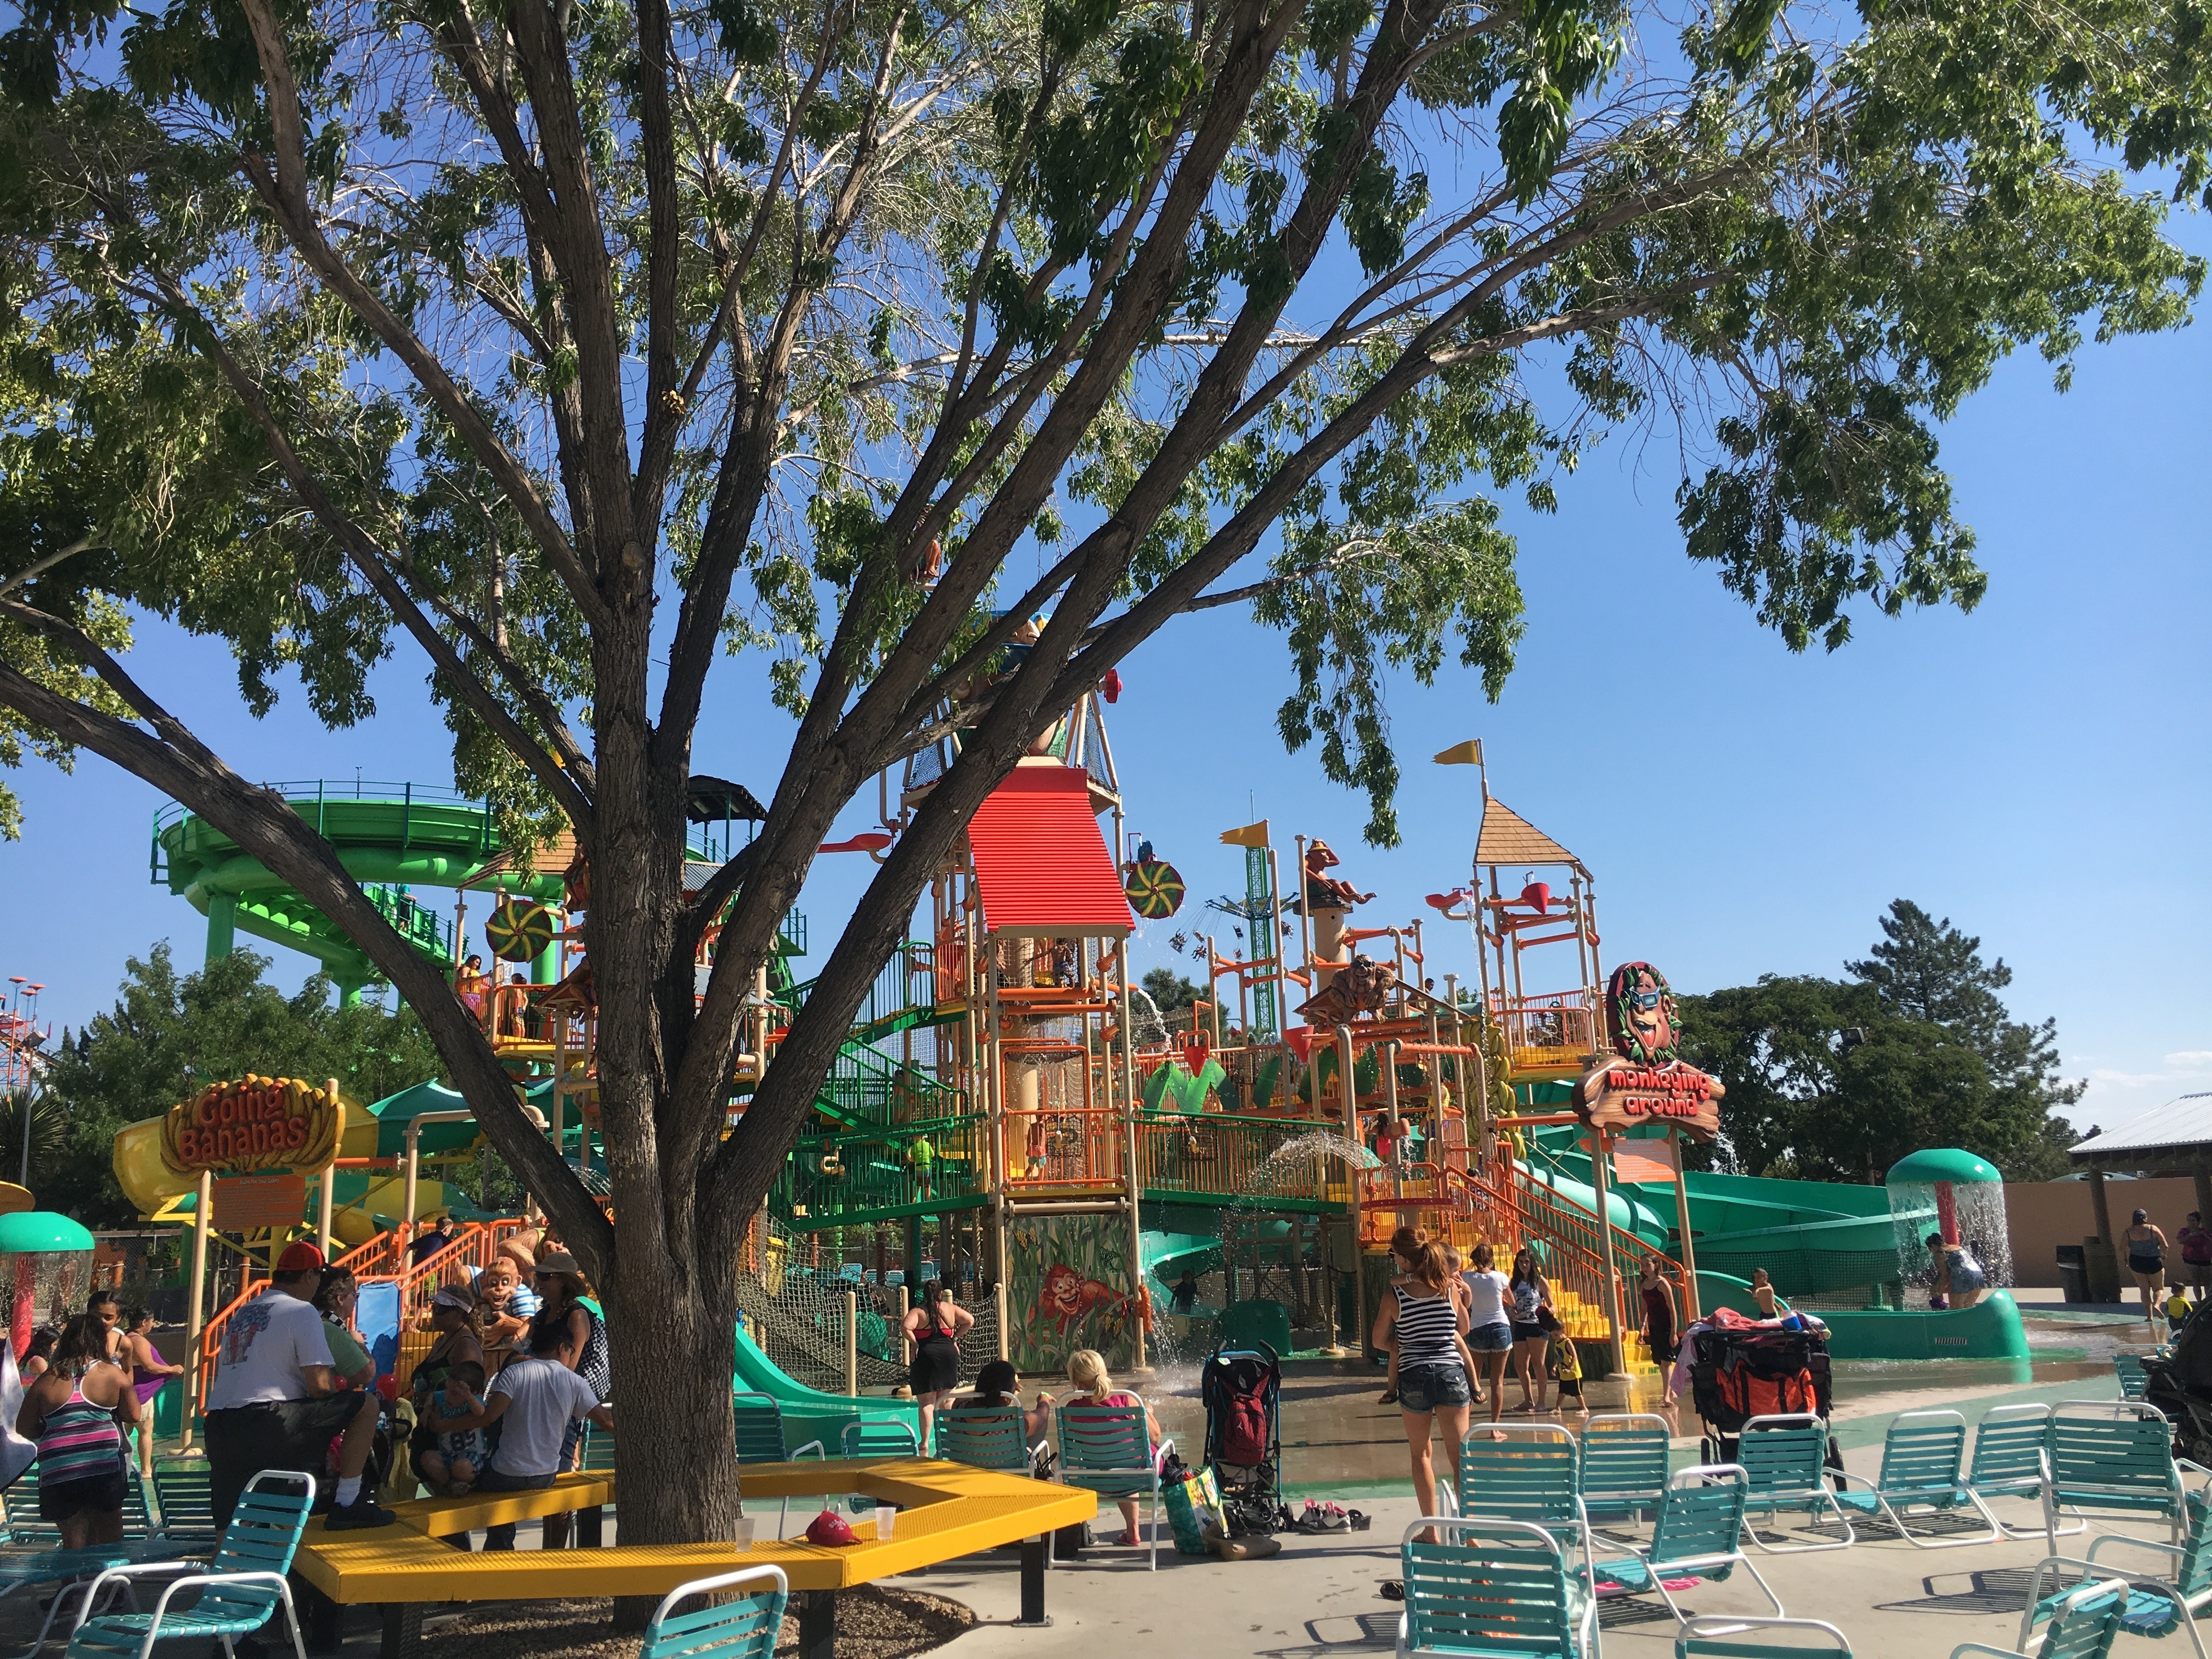 Cliff's Amusement Park has an awesome waterpark you have got to check out in New Mexico.